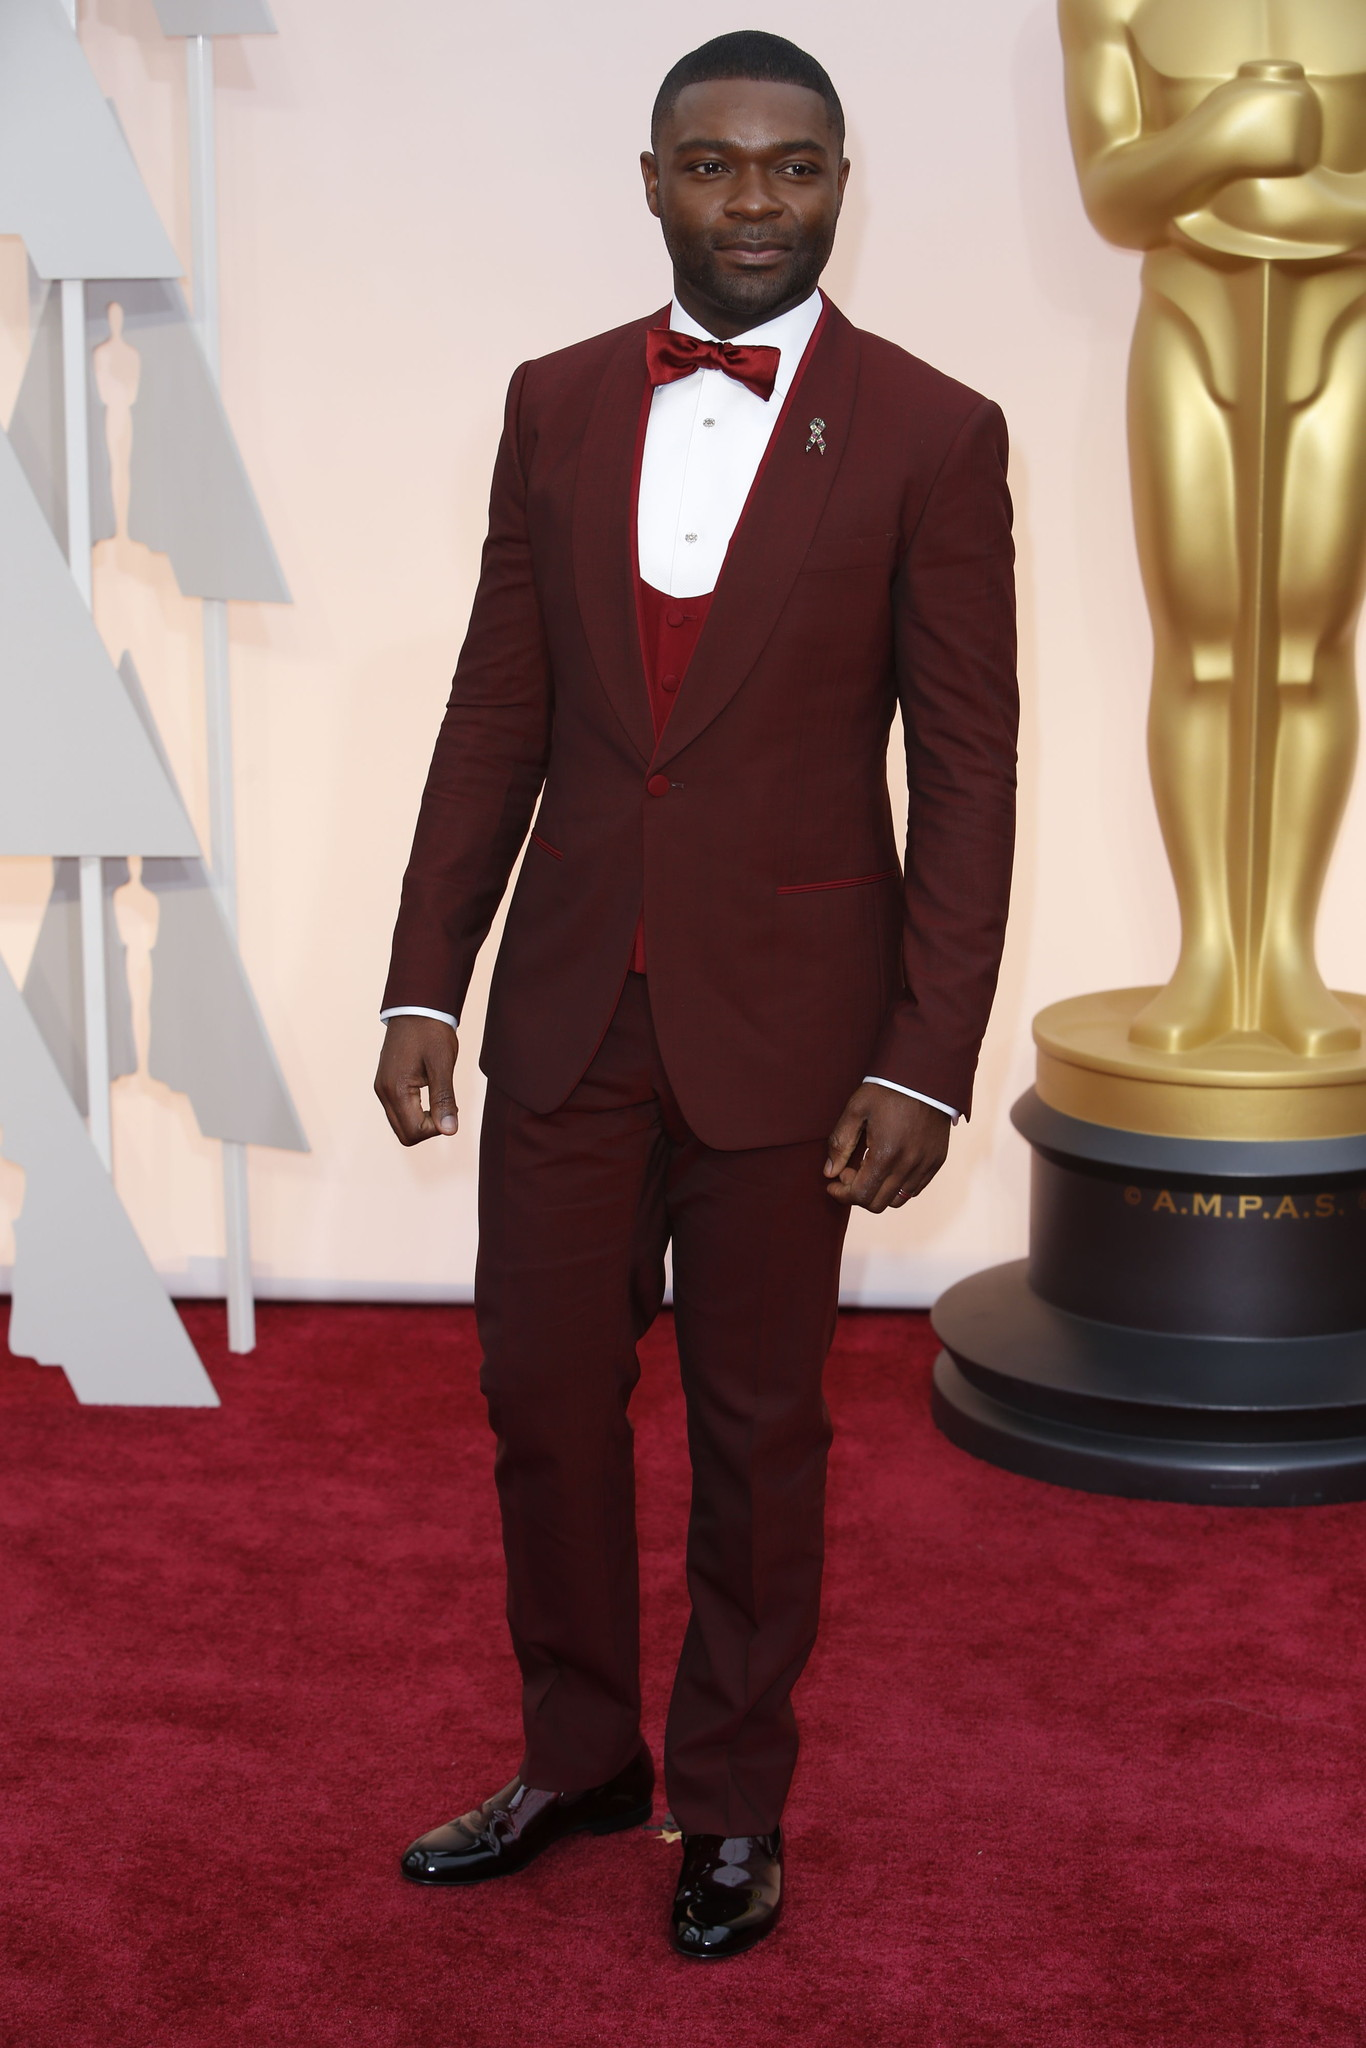 Oscar 2015 red carpet David Oyelowo in a pose